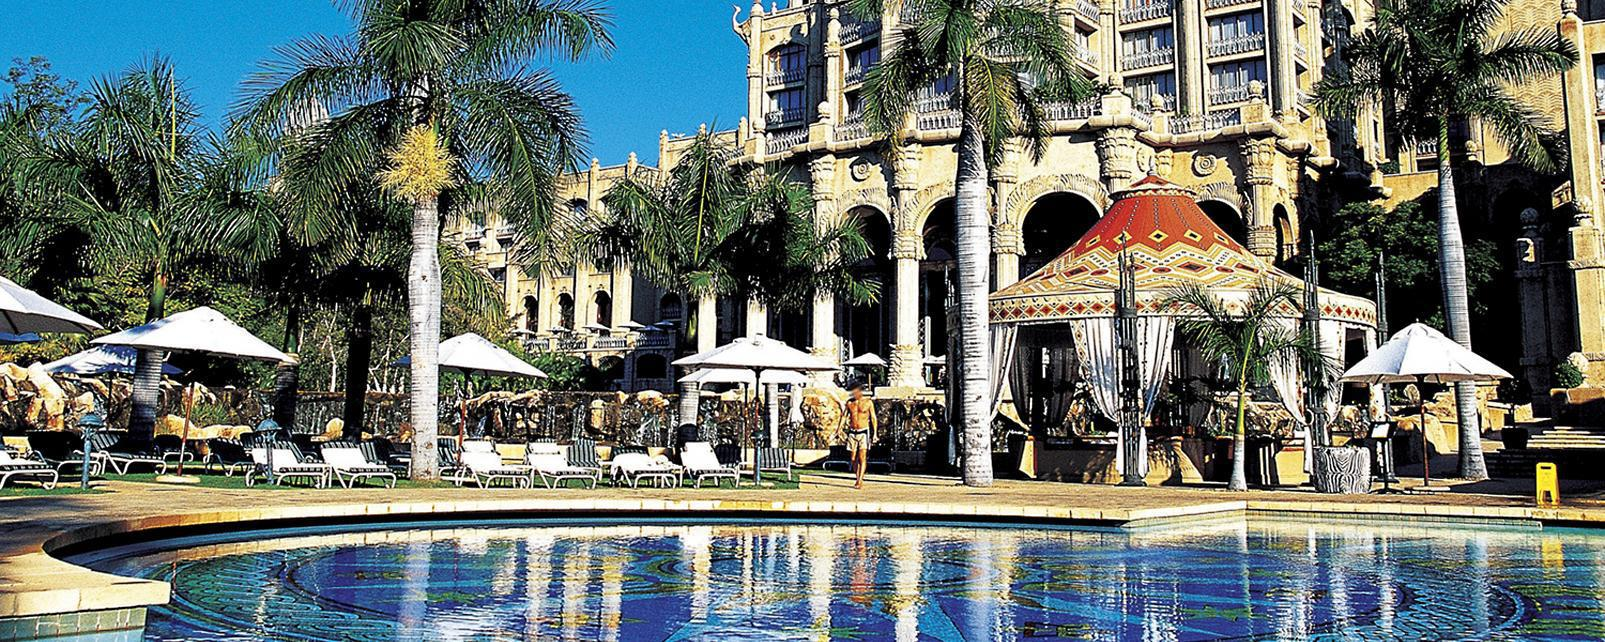 Travel To Sun City South Africa Sun City Travel Guide